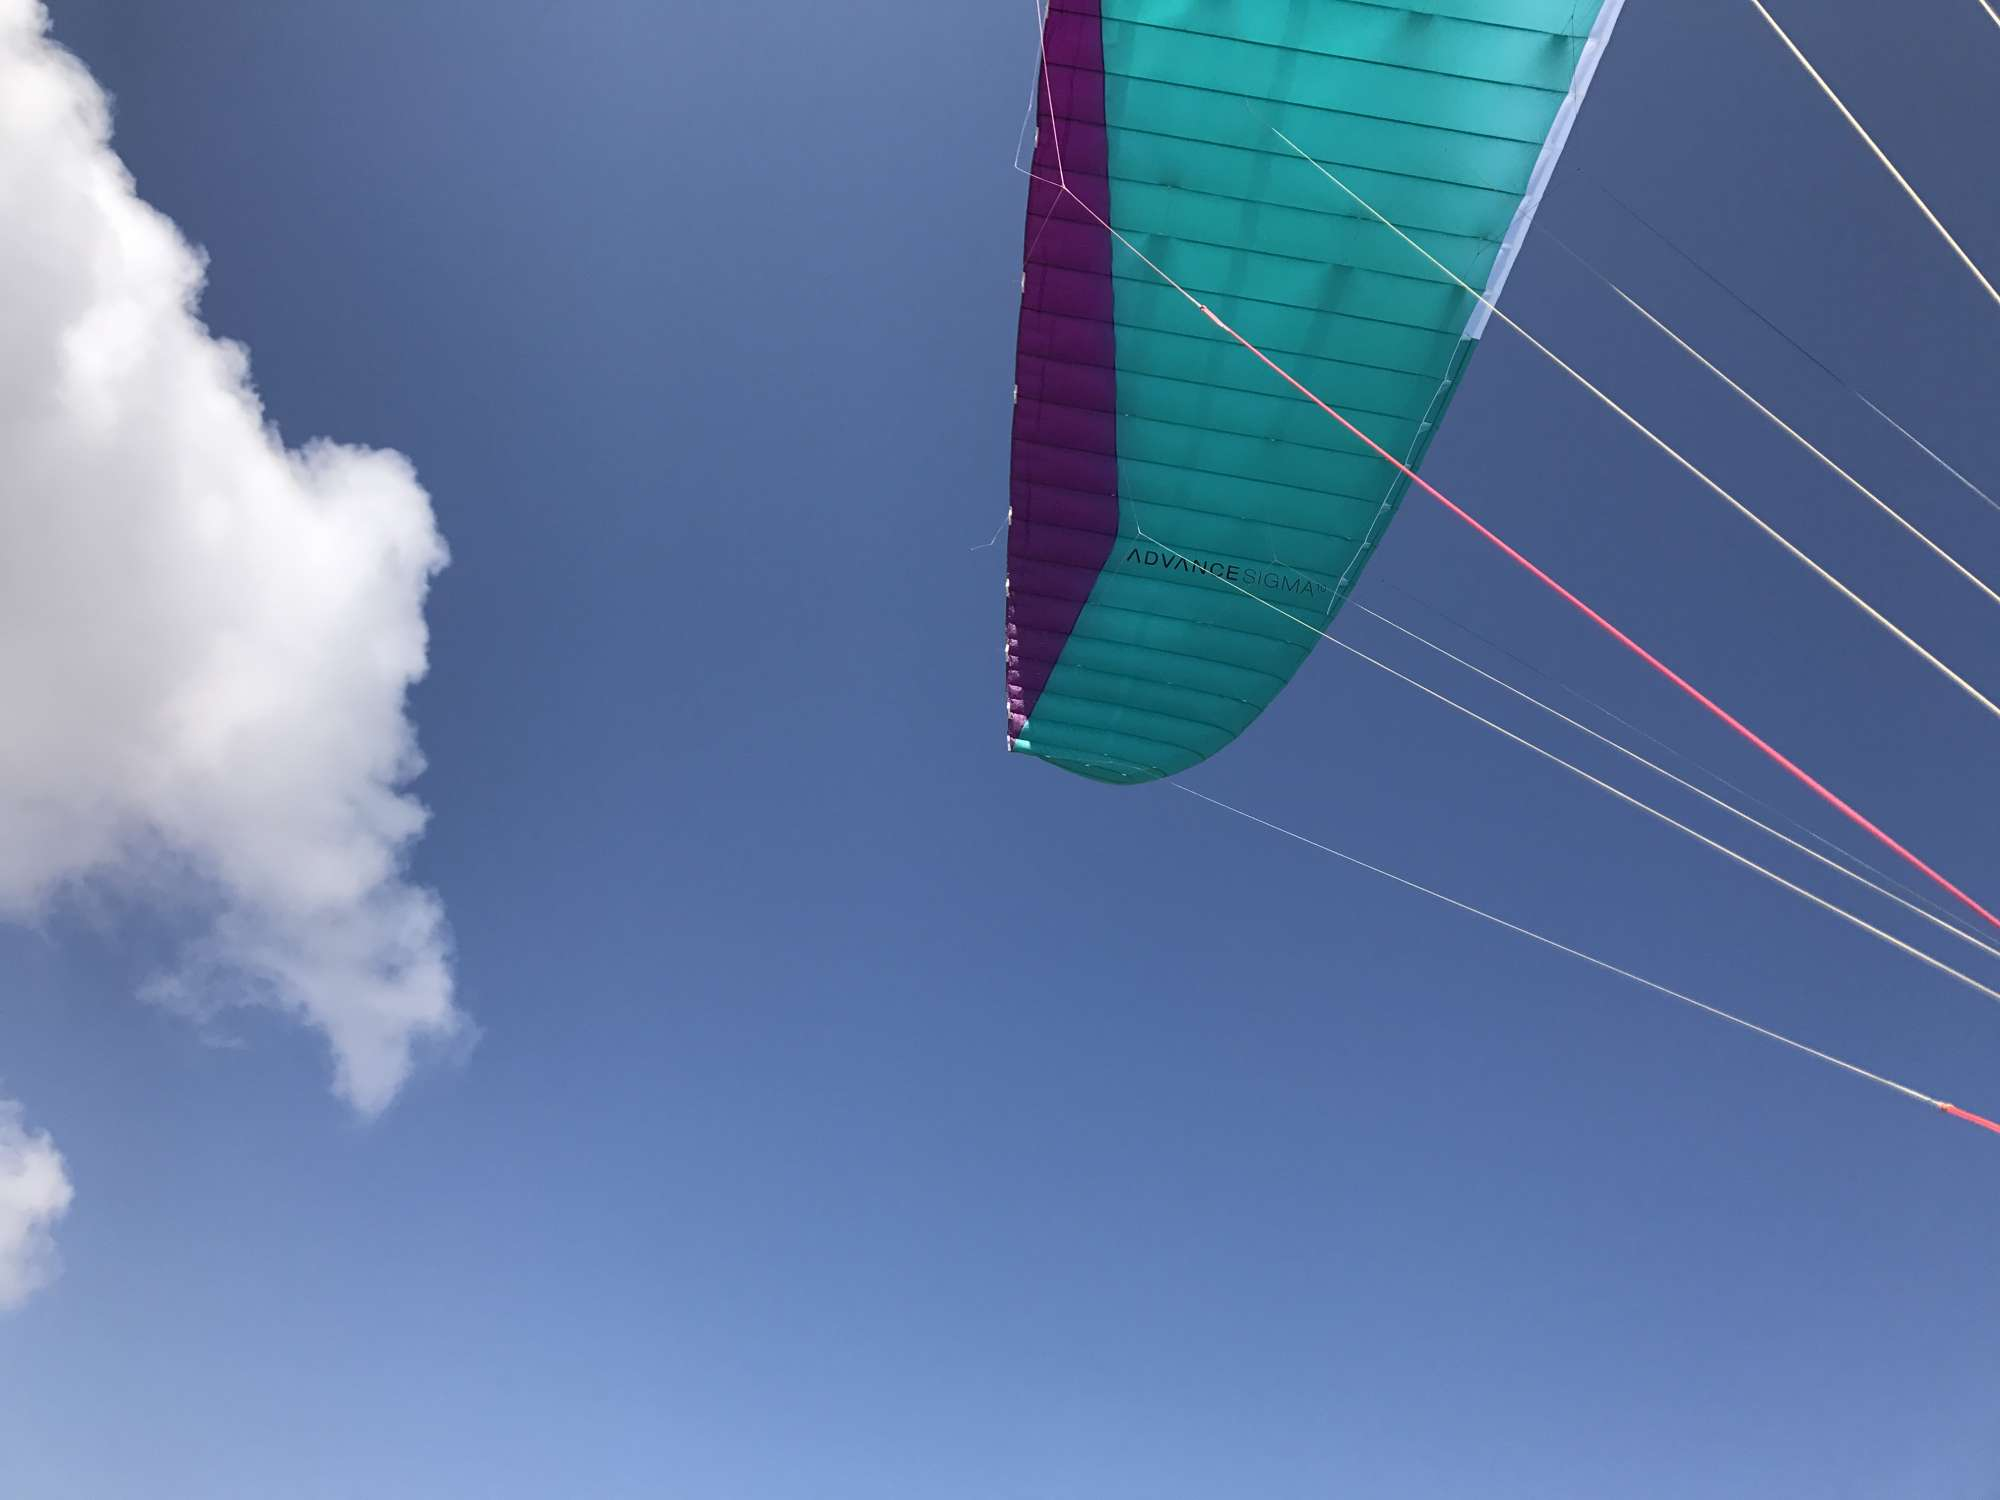 Want some great winter paragliding?